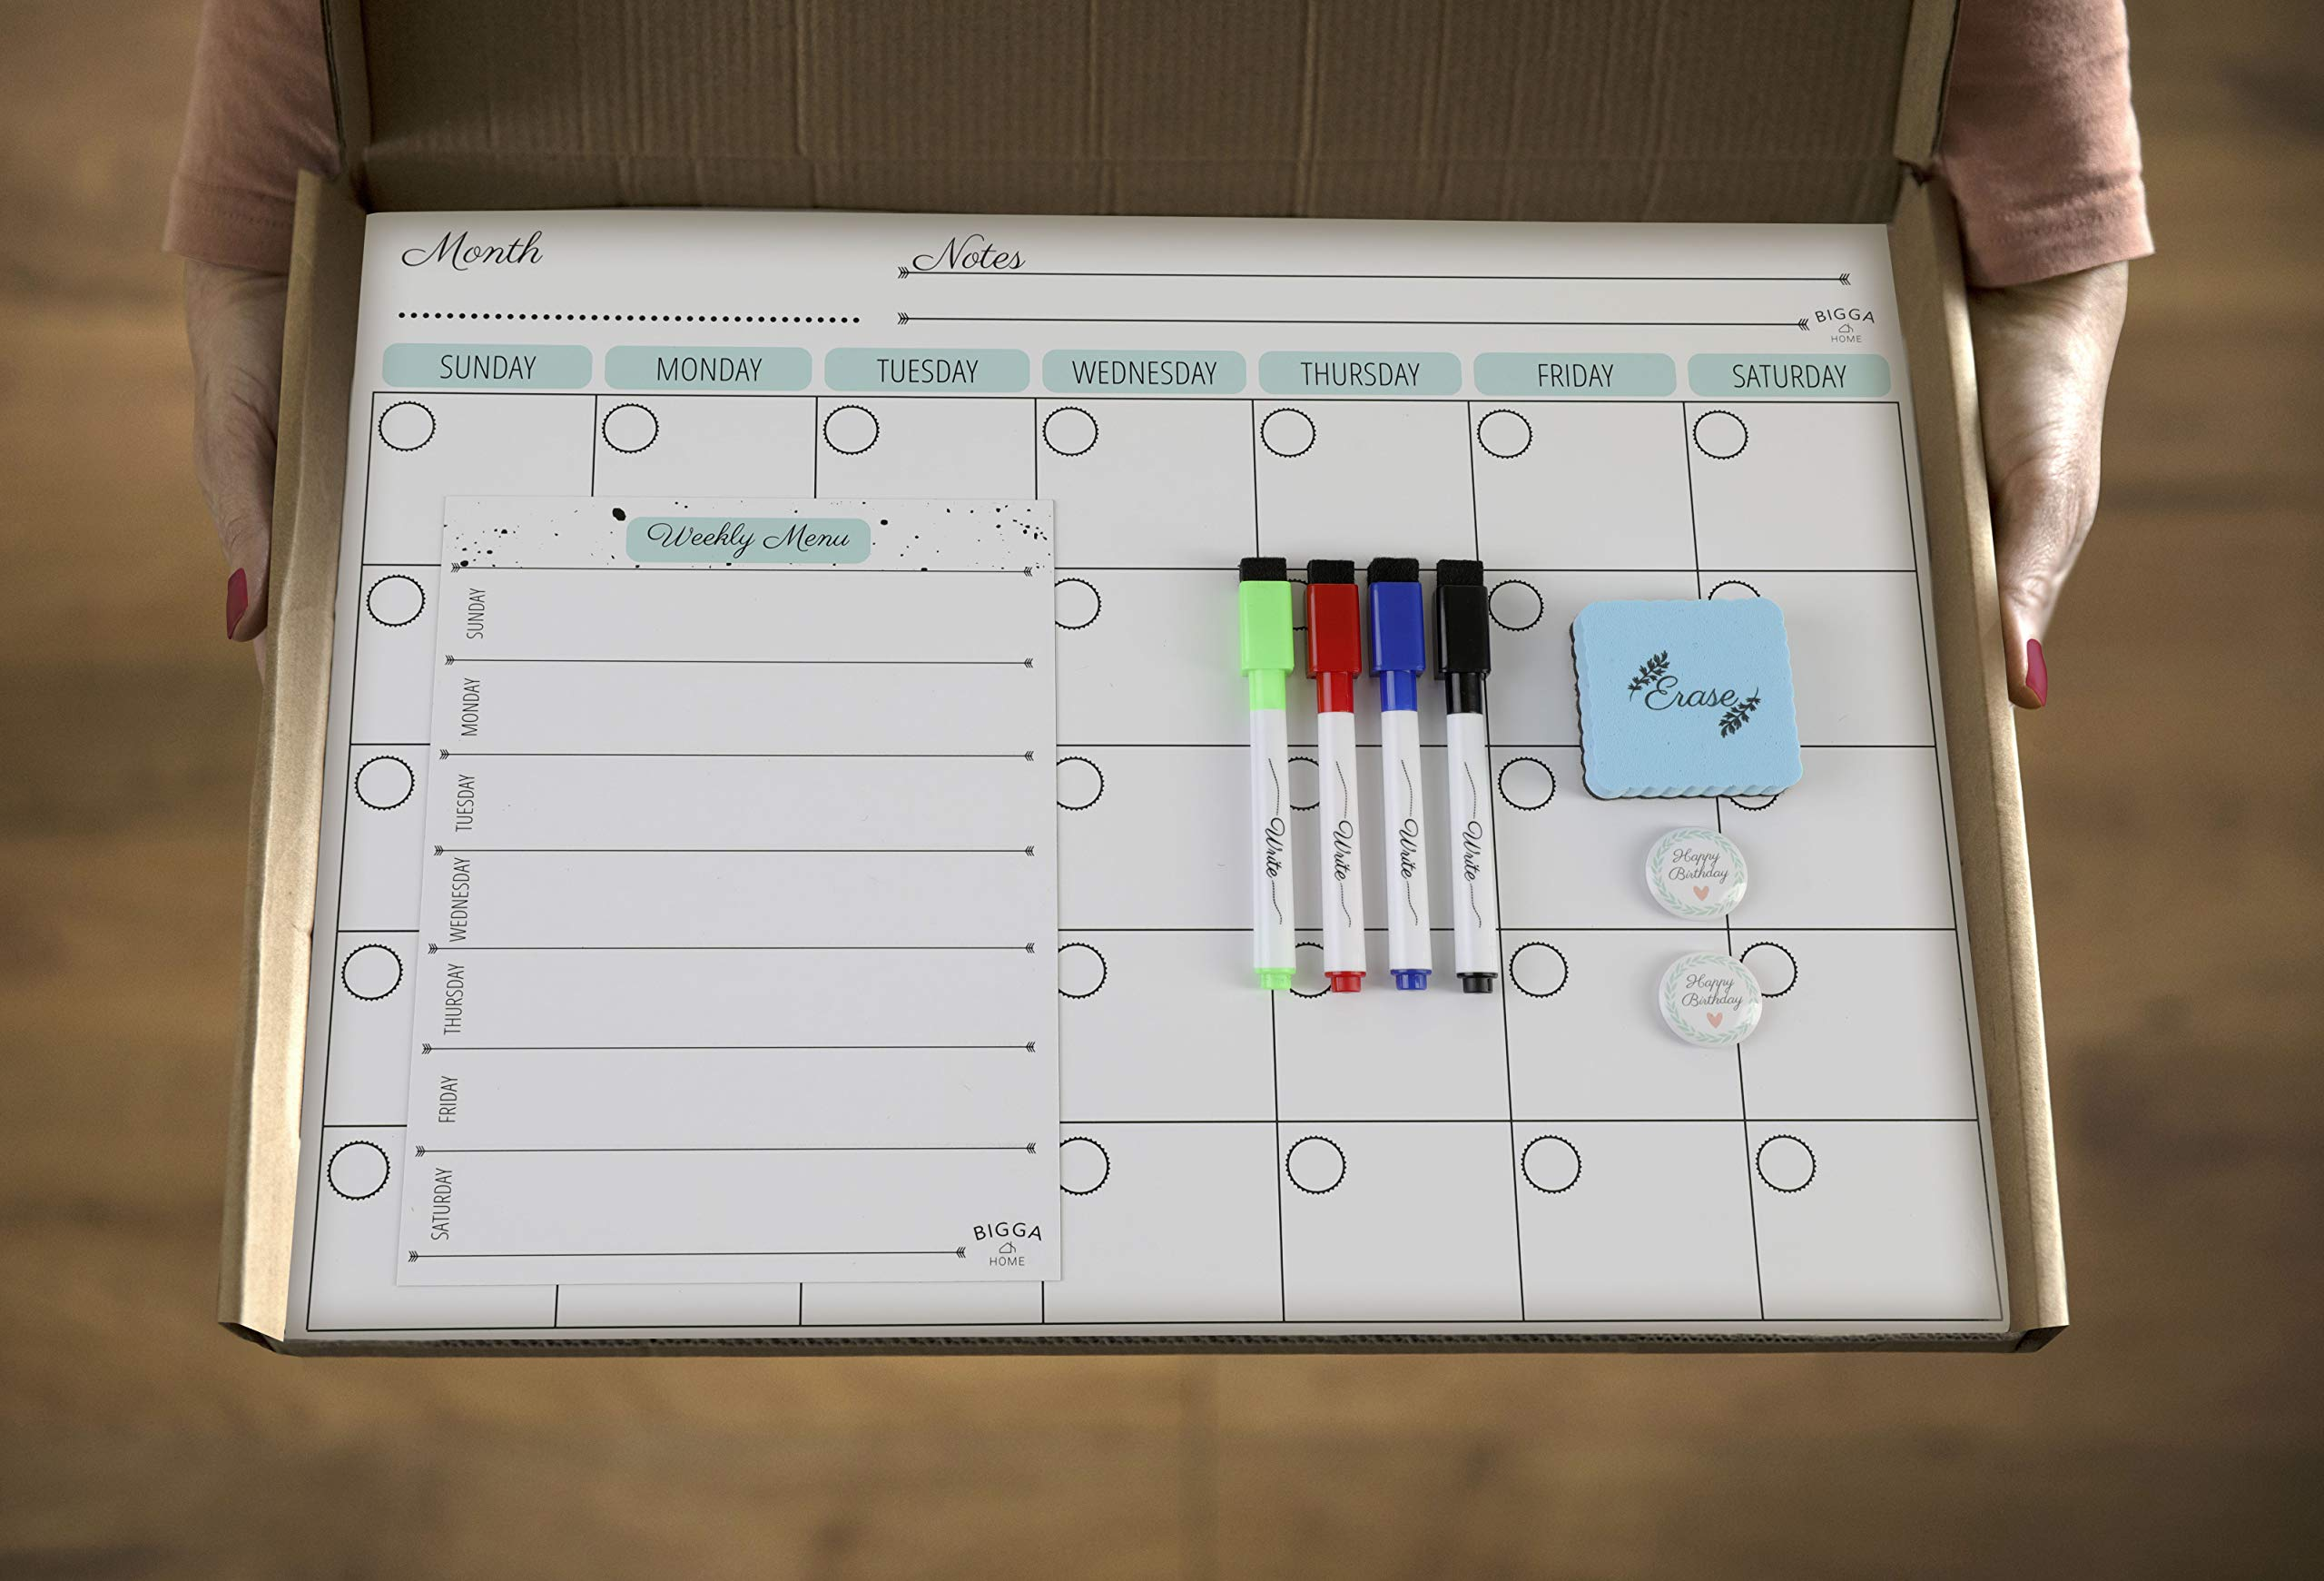 Dry Erase Monthly Magnetic Calendar Planner Set, White Board W/Extra Meal Planner, for Kitchen Refrigerator, Flexible, a Highly Designed Stiff Box for Home or Office. White, 16''x12''. by BIGGAHOME by Bigga Home (Image #7)